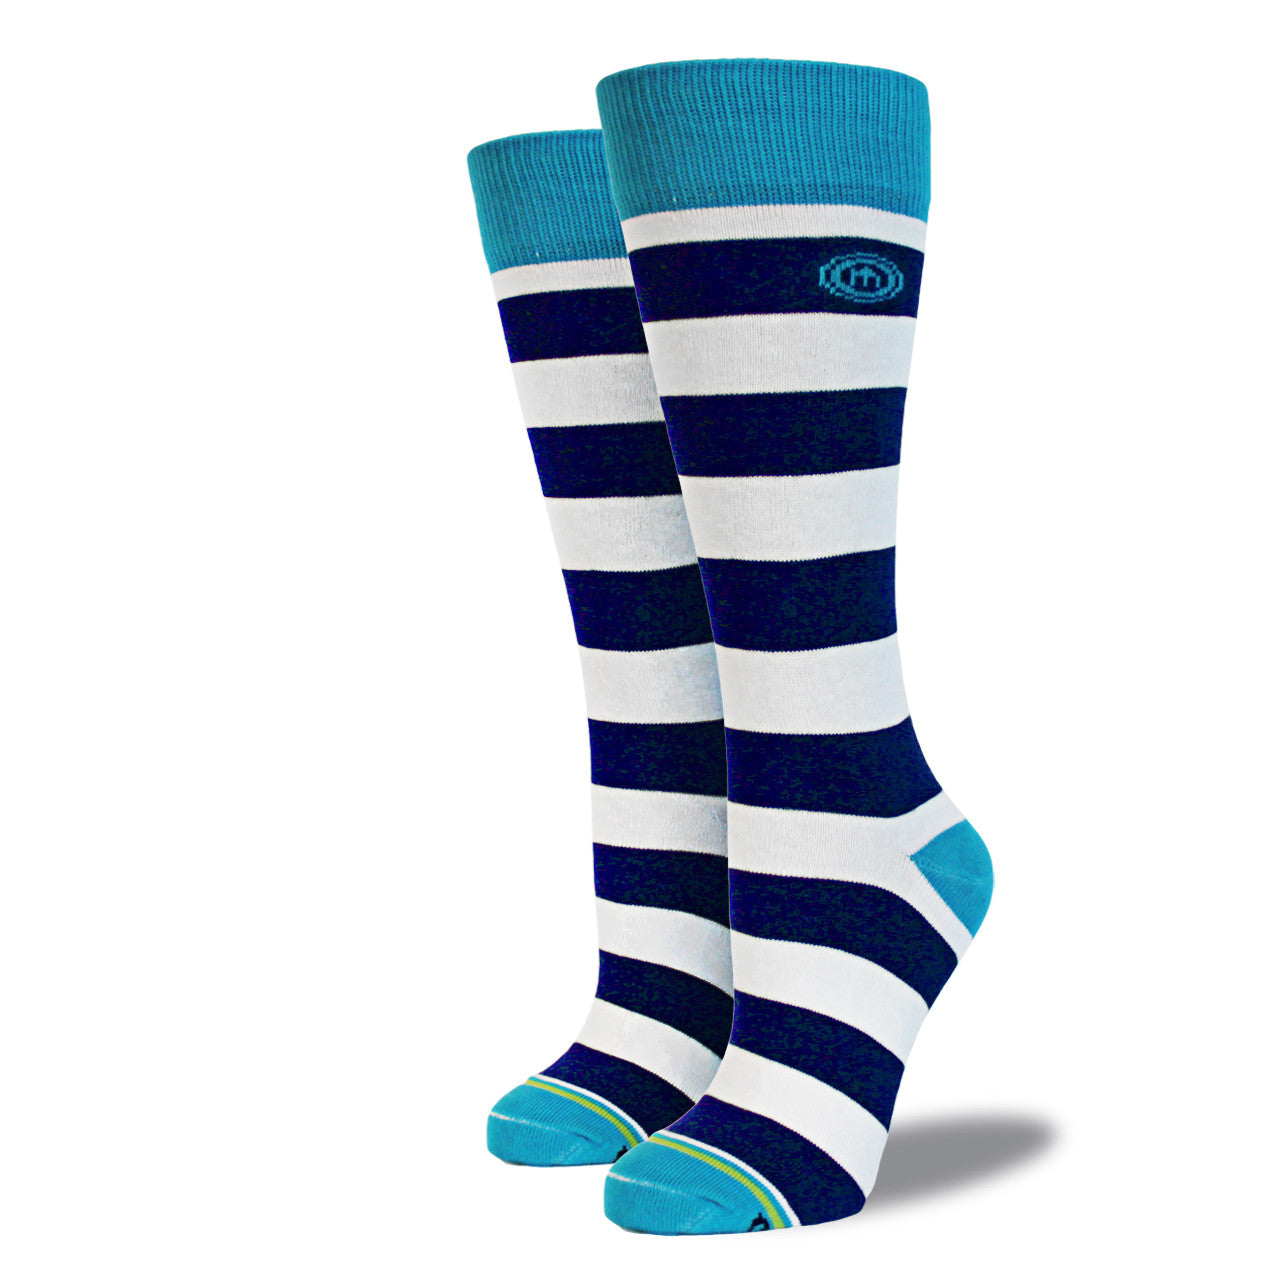 9bea1947d Mitscoots Outfitters - The Stine Womens Navy Striped Socks